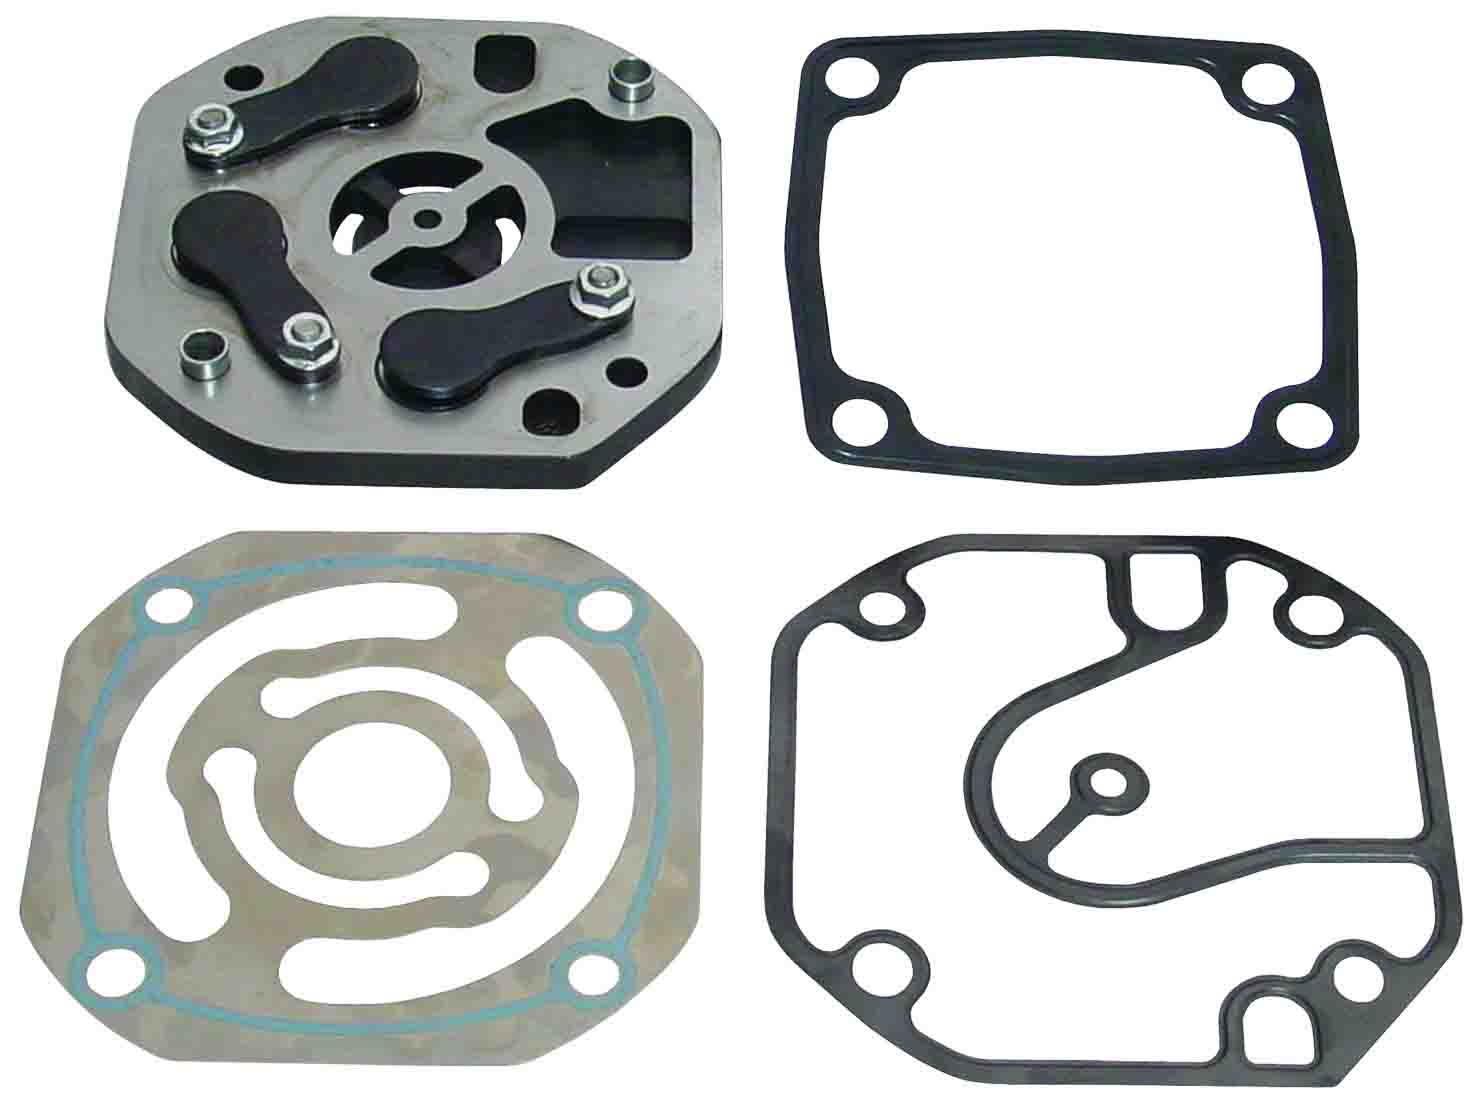 MERCEDES VALVE PLATE KIT ARC-EXP.304676 4421301120